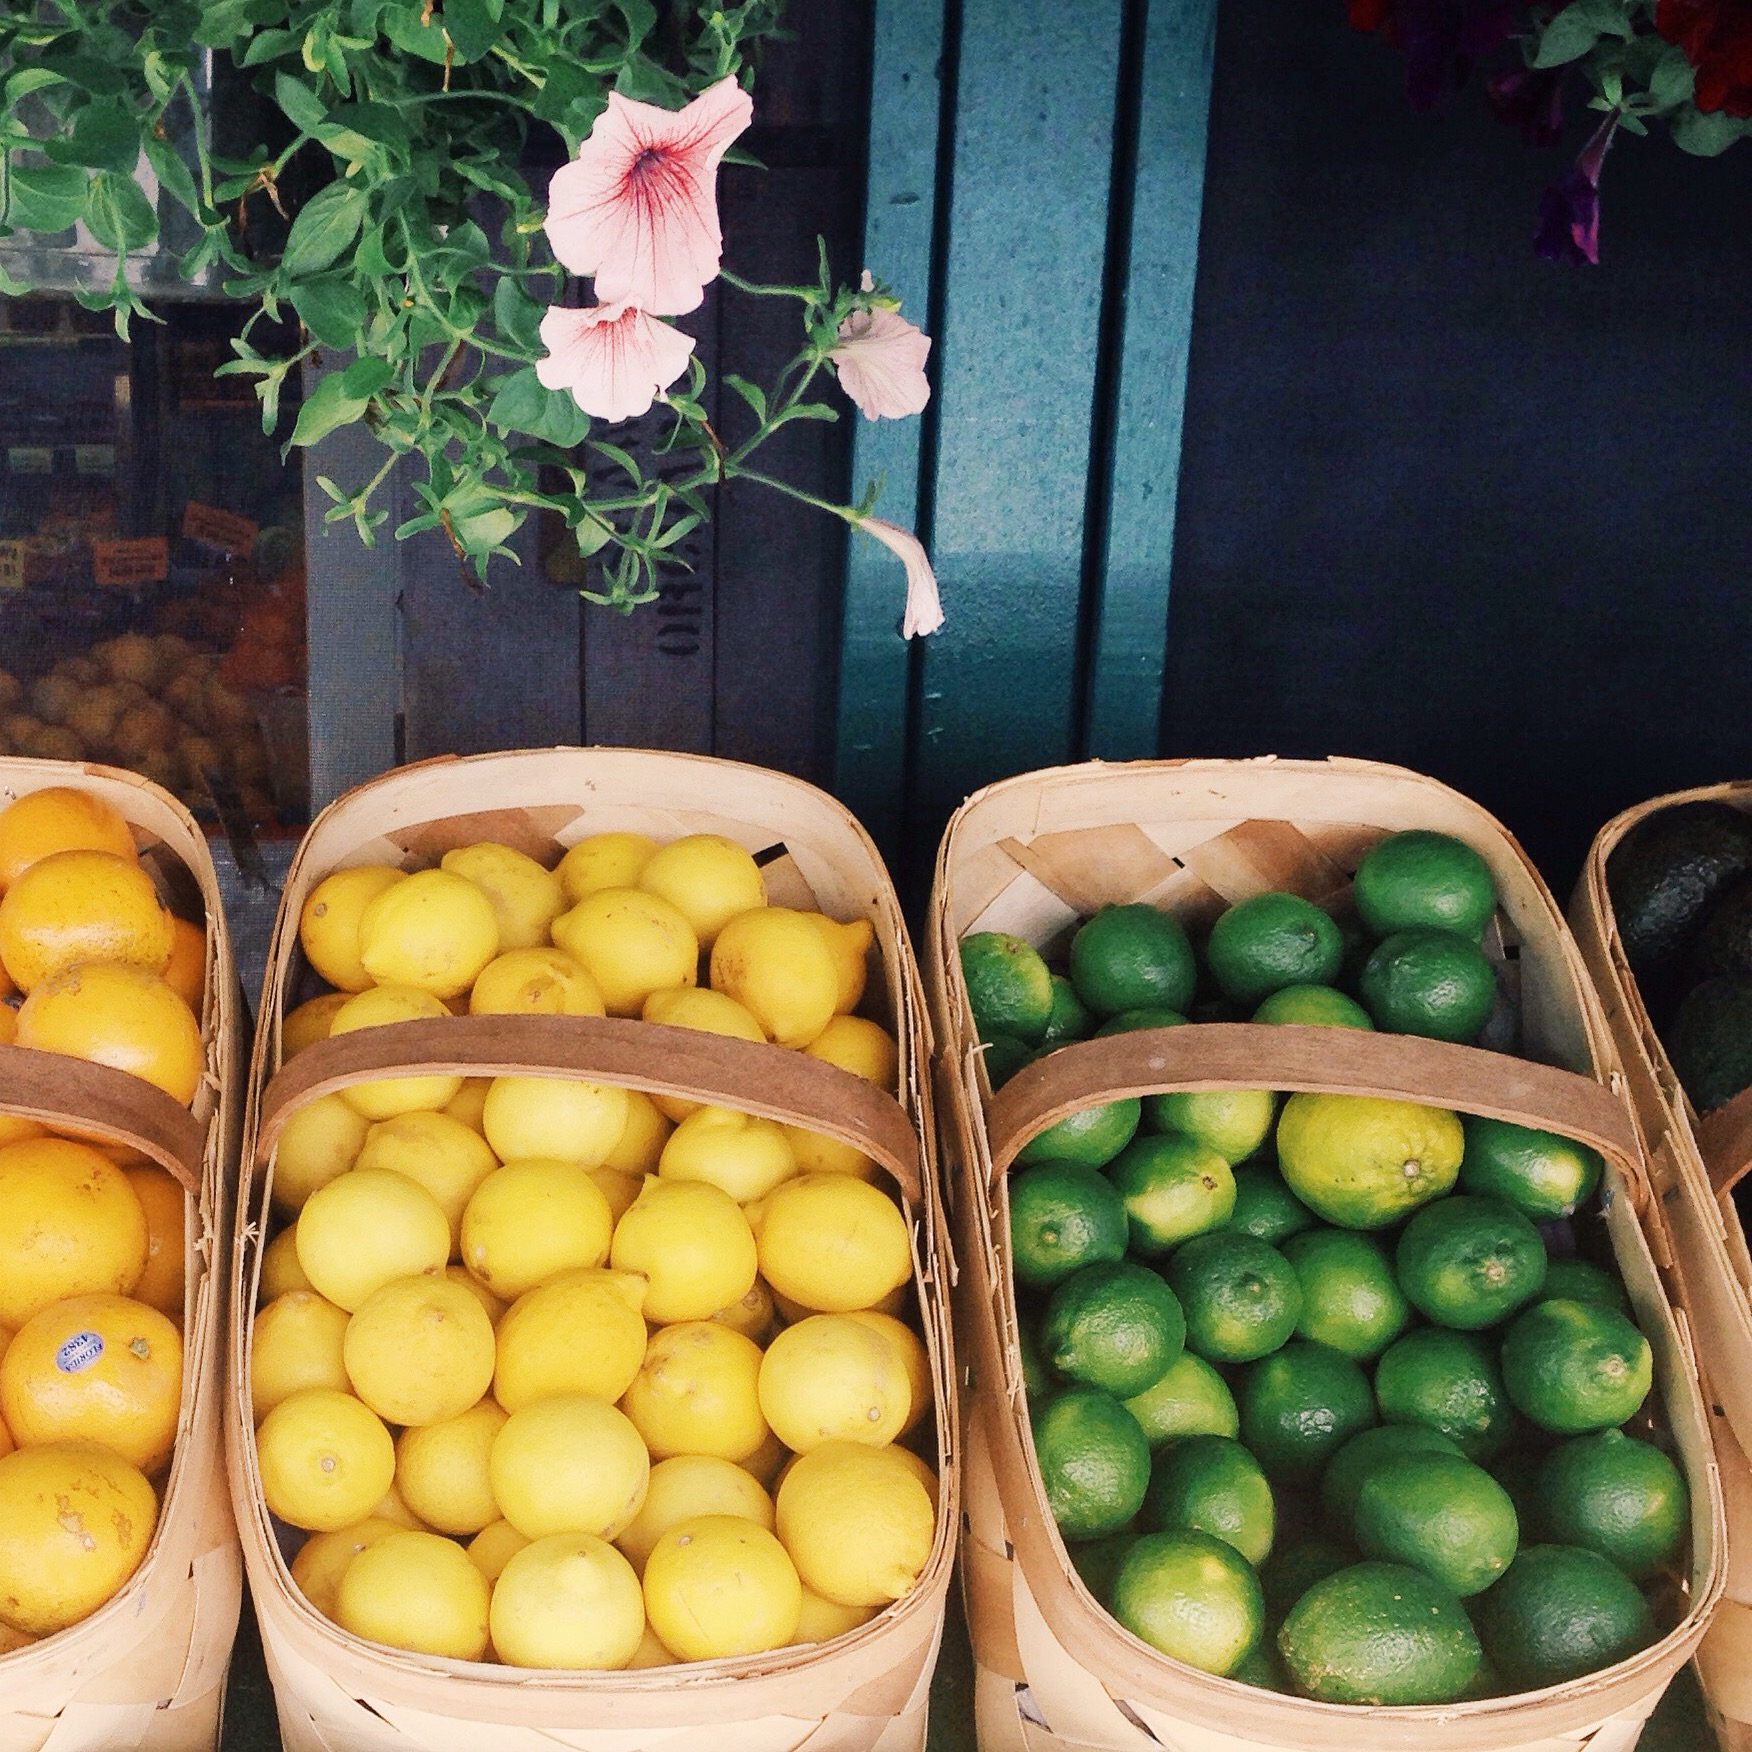 Leomons  and  Limes  at  Local  the  Fruit  Stand